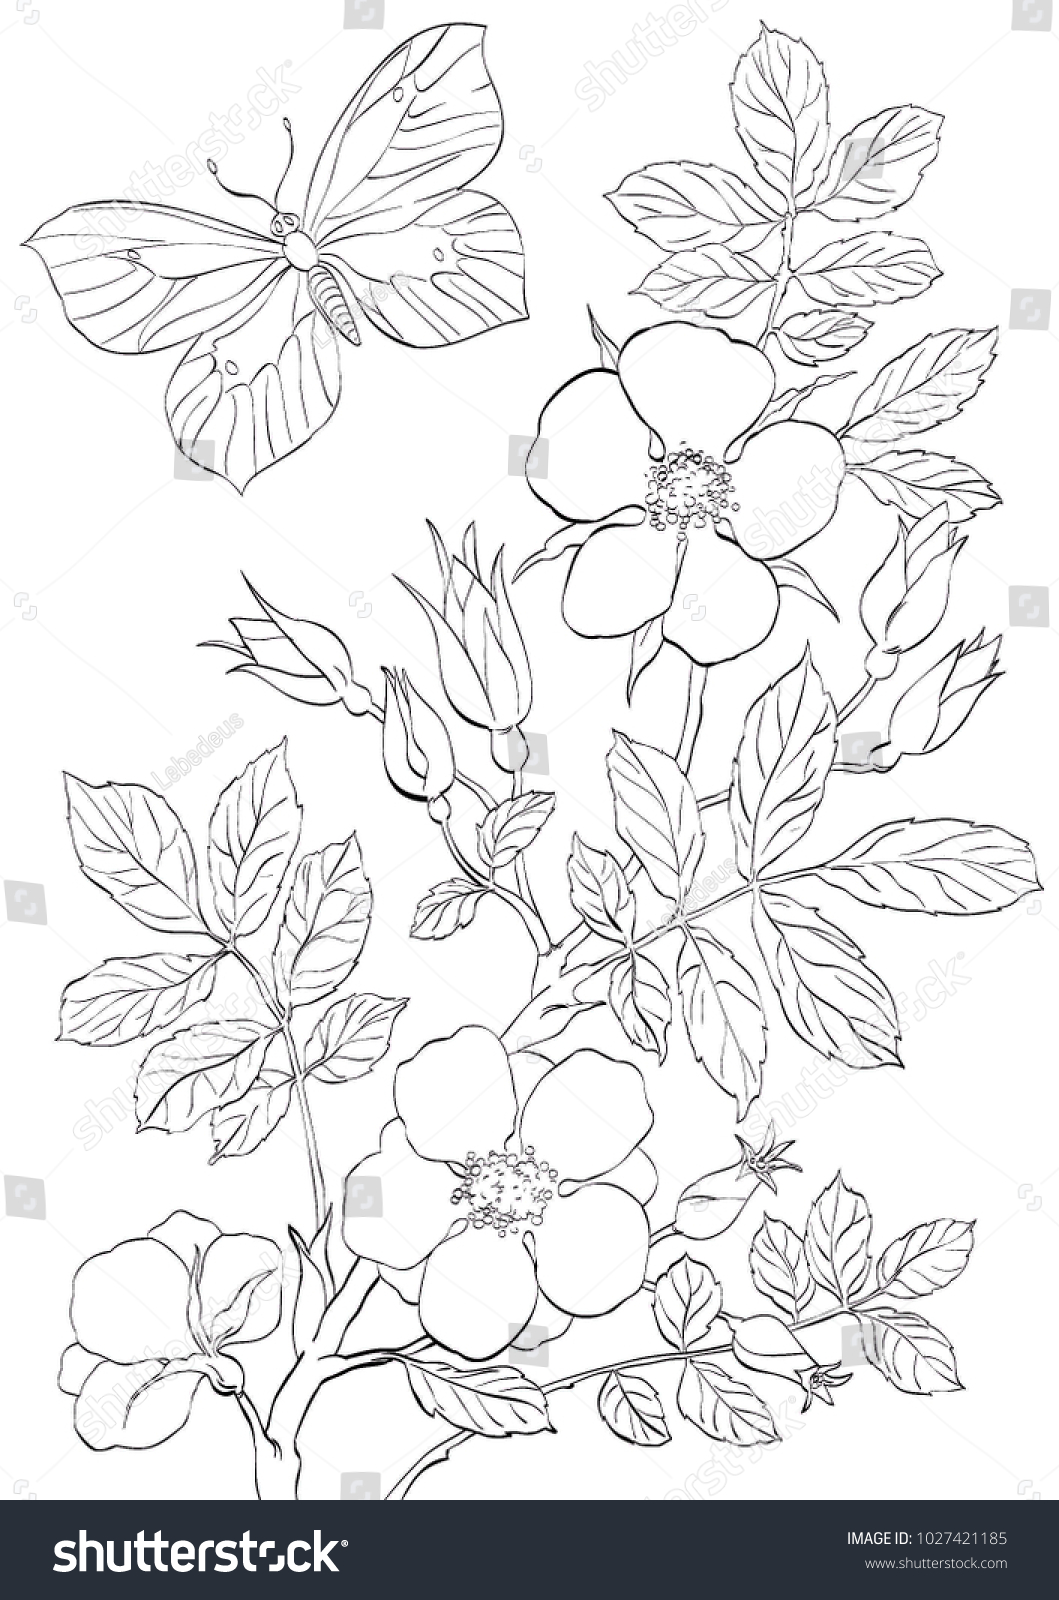 Vector Outline Branch Wild Rose Flowers Stock Vector (Royalty Free ...